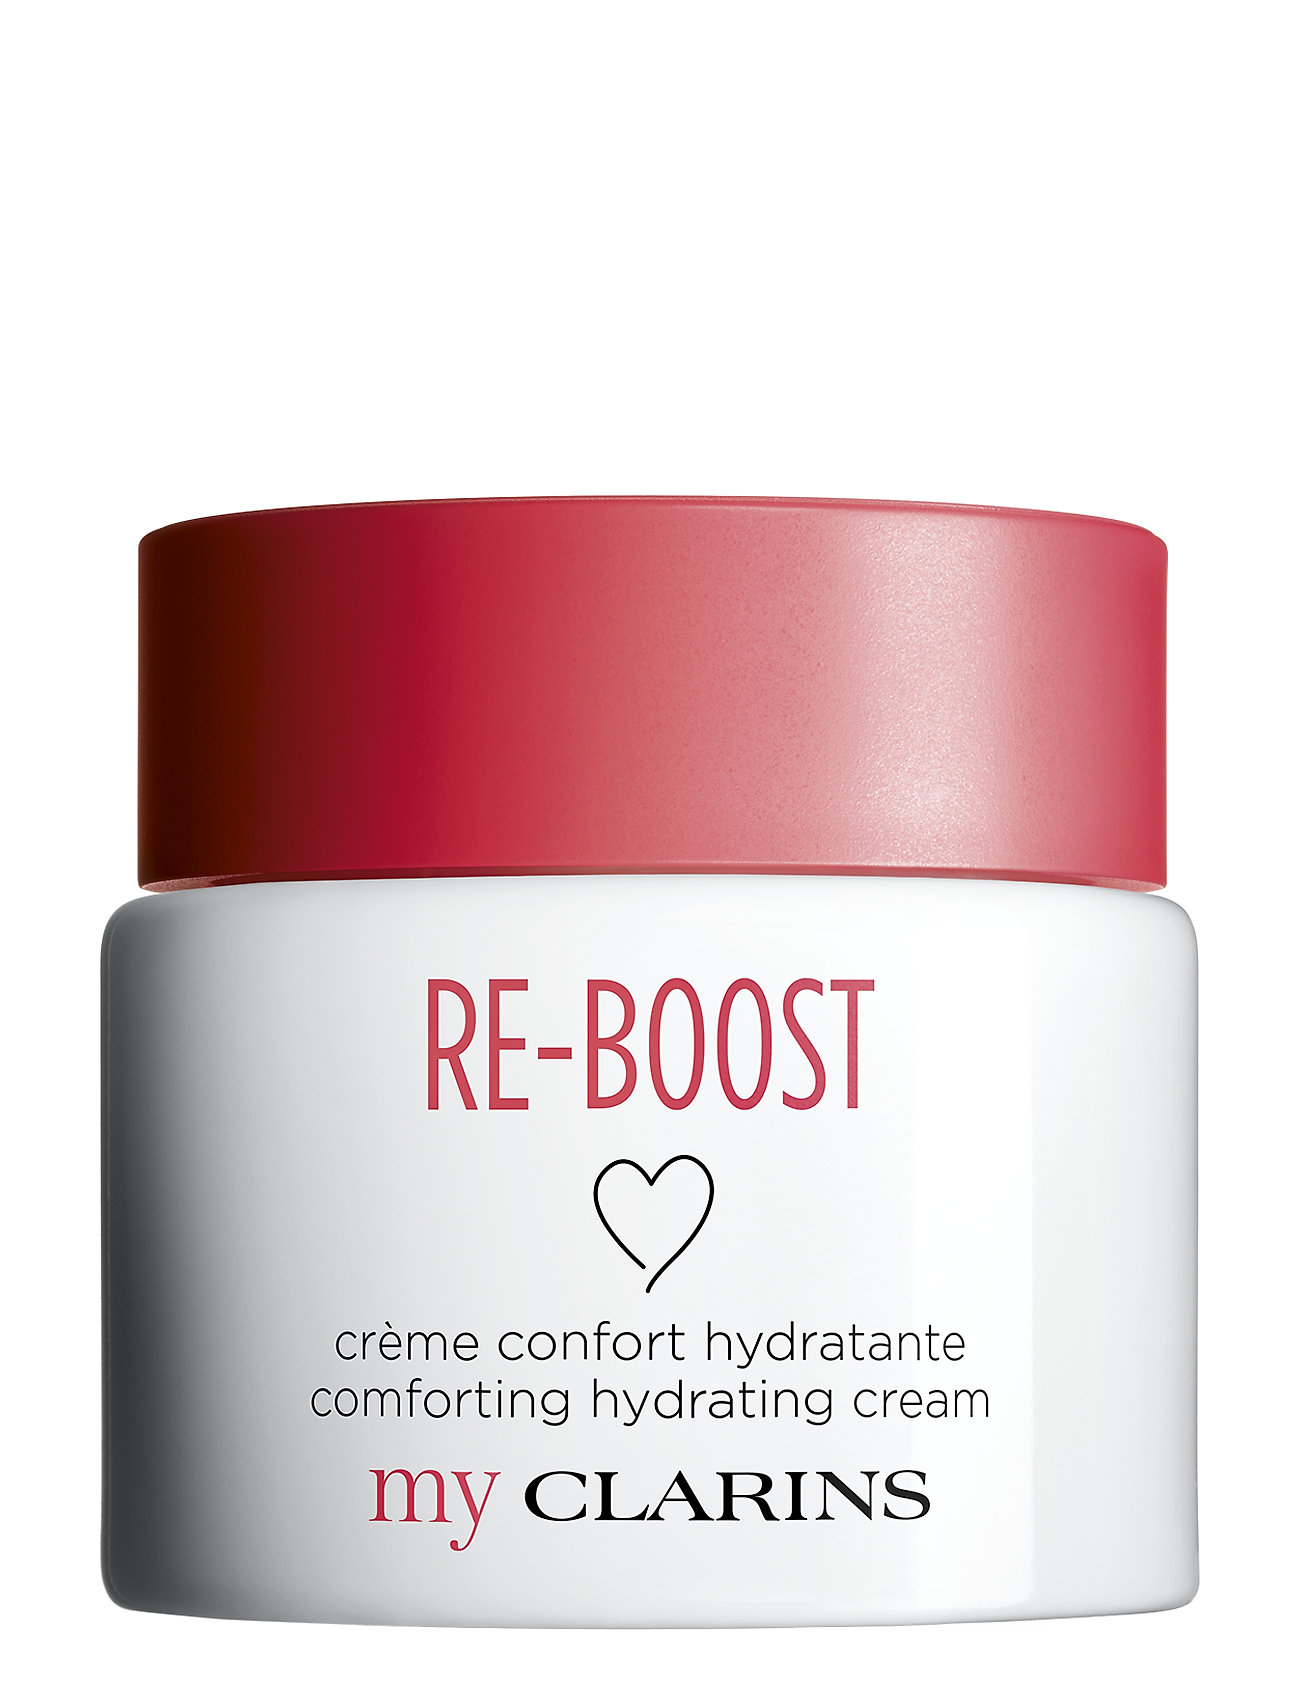 Image of My Clarins Comforting Hydrating Cream Dry Skin Beauty WOMEN Skin Care Face Day Creams Clarins (3410527019)